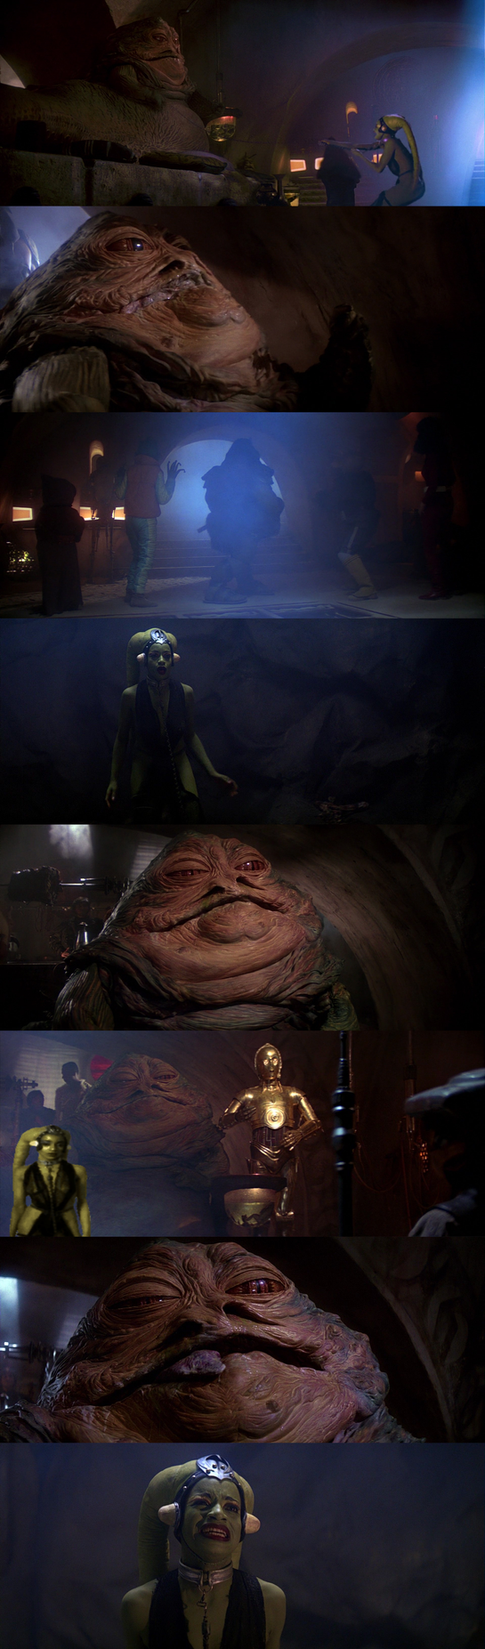 Oola - Perfect timing Leia by Jdueler11 on DeviantArt Jabba The Hutt And Oola